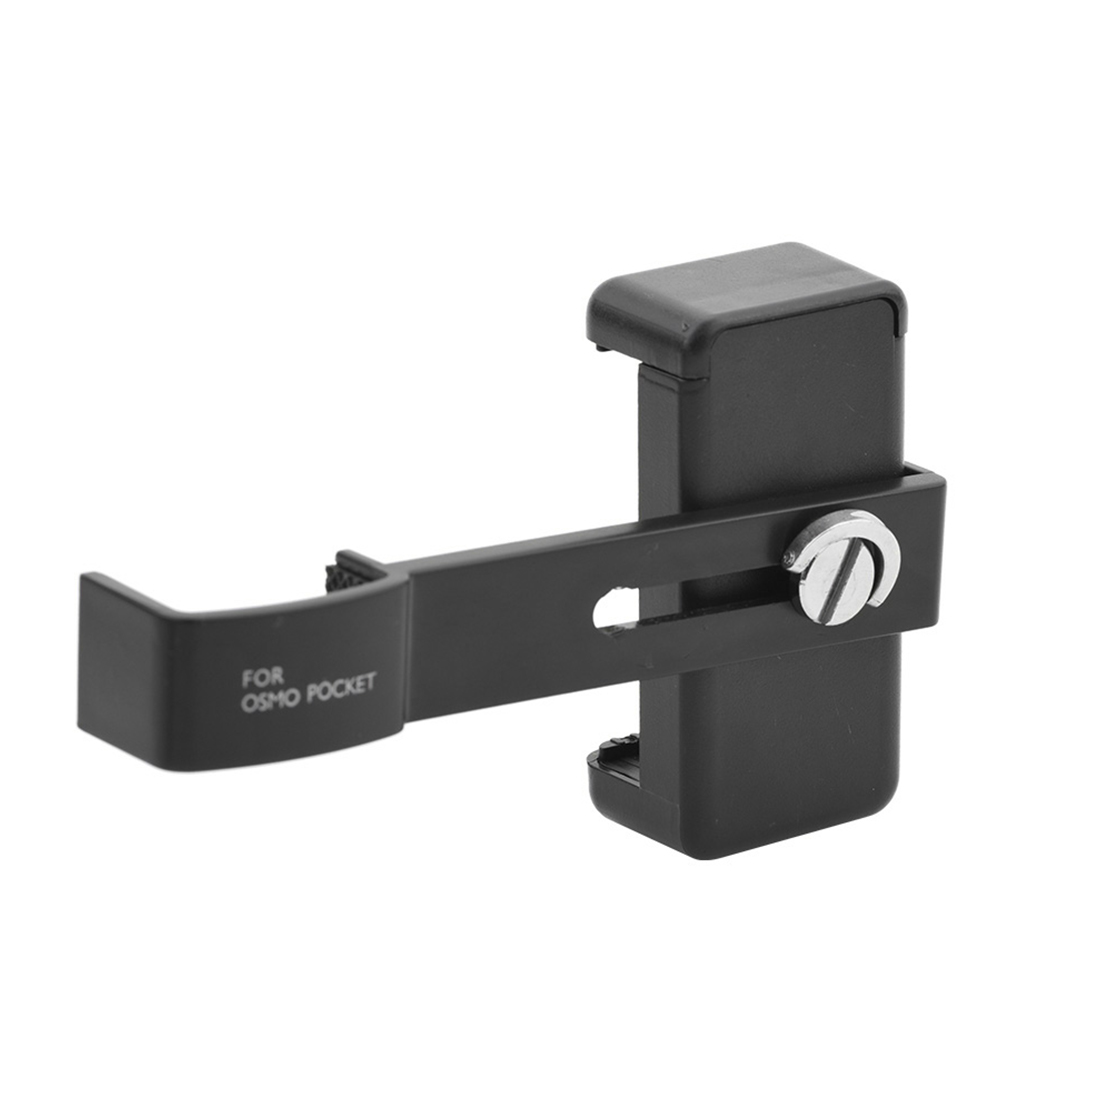 Mobile Phone Securing Clip Bracket Mount Desktop Tripod for DJI Osmo Pocket Phone Clip Handheld Gimbal Accessories in Gimbal Accessories from Consumer Electronics